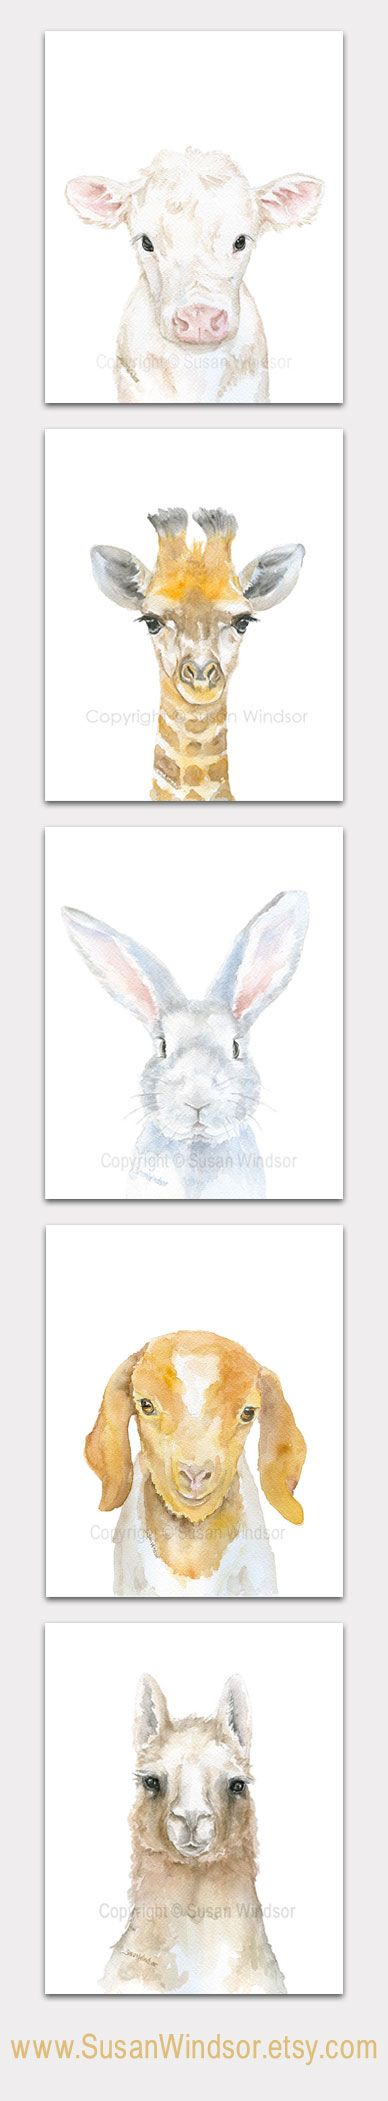 43 best images about sea bunny on pinterest bunny slippers slug and - Set Of 5 Watercolor Animal Art Prints Goat Llama Cow Bunny Giraffe Portrait Vertical Orientation